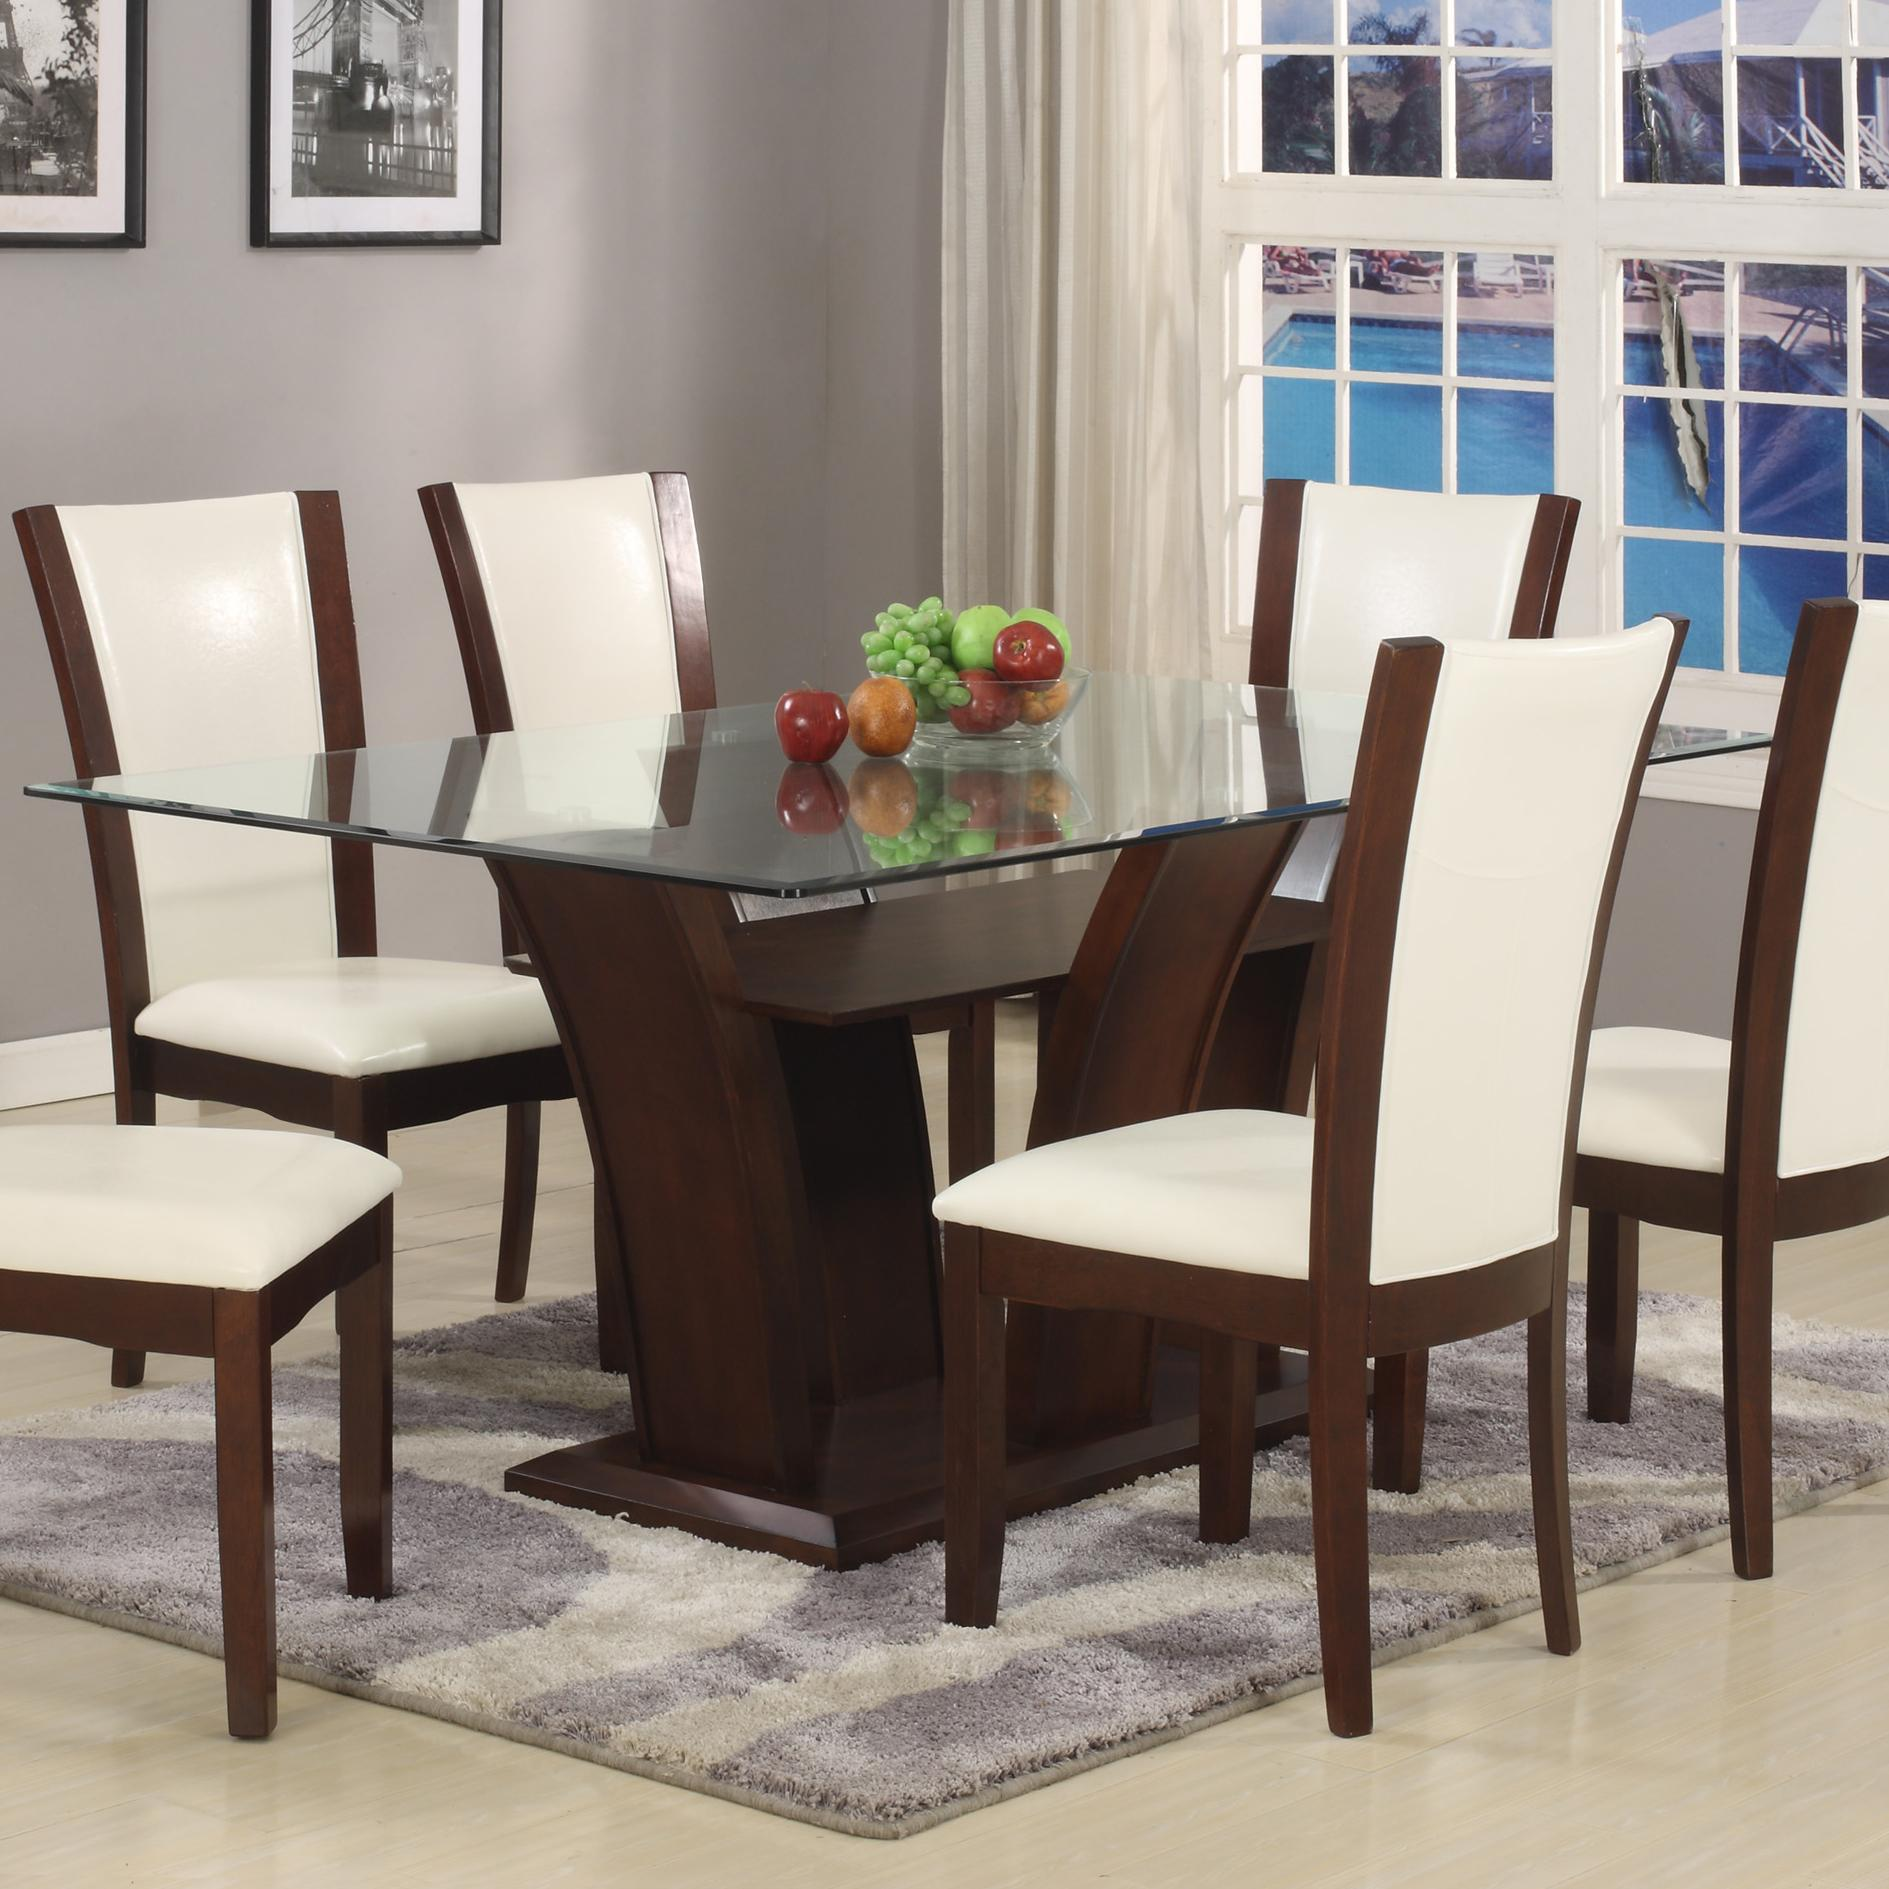 Glass Dining Table And Chairs Camelia White Rectangular Dining Table With Glass Top By Crown Mark At Royal Furniture